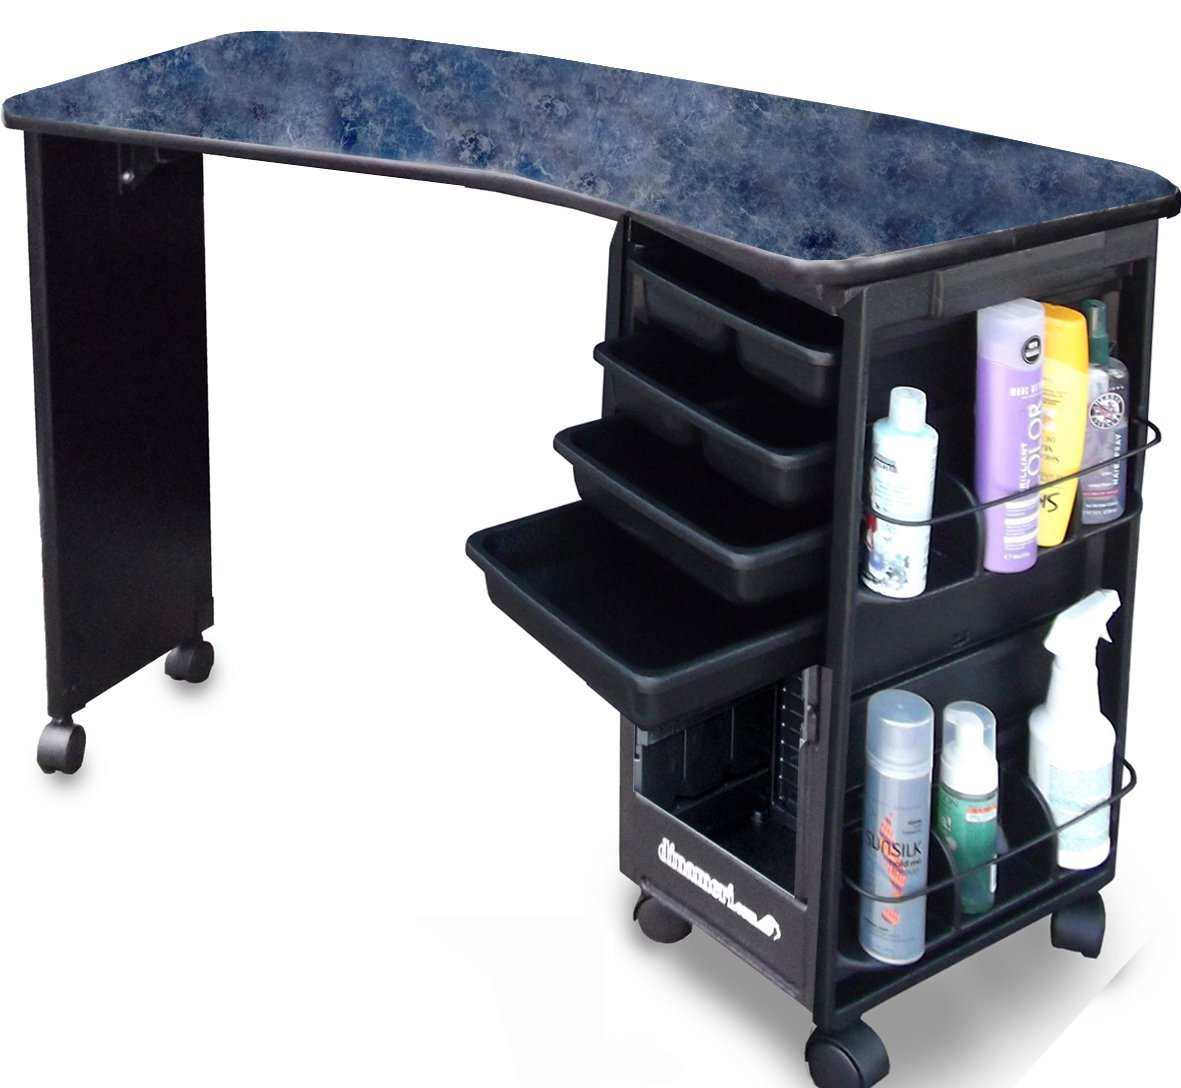 M600-E Econo Manicure Nail Table Curved Black Marble Lamininated Top Made in USA by Dina Meri by Dina Meri (Image #2)